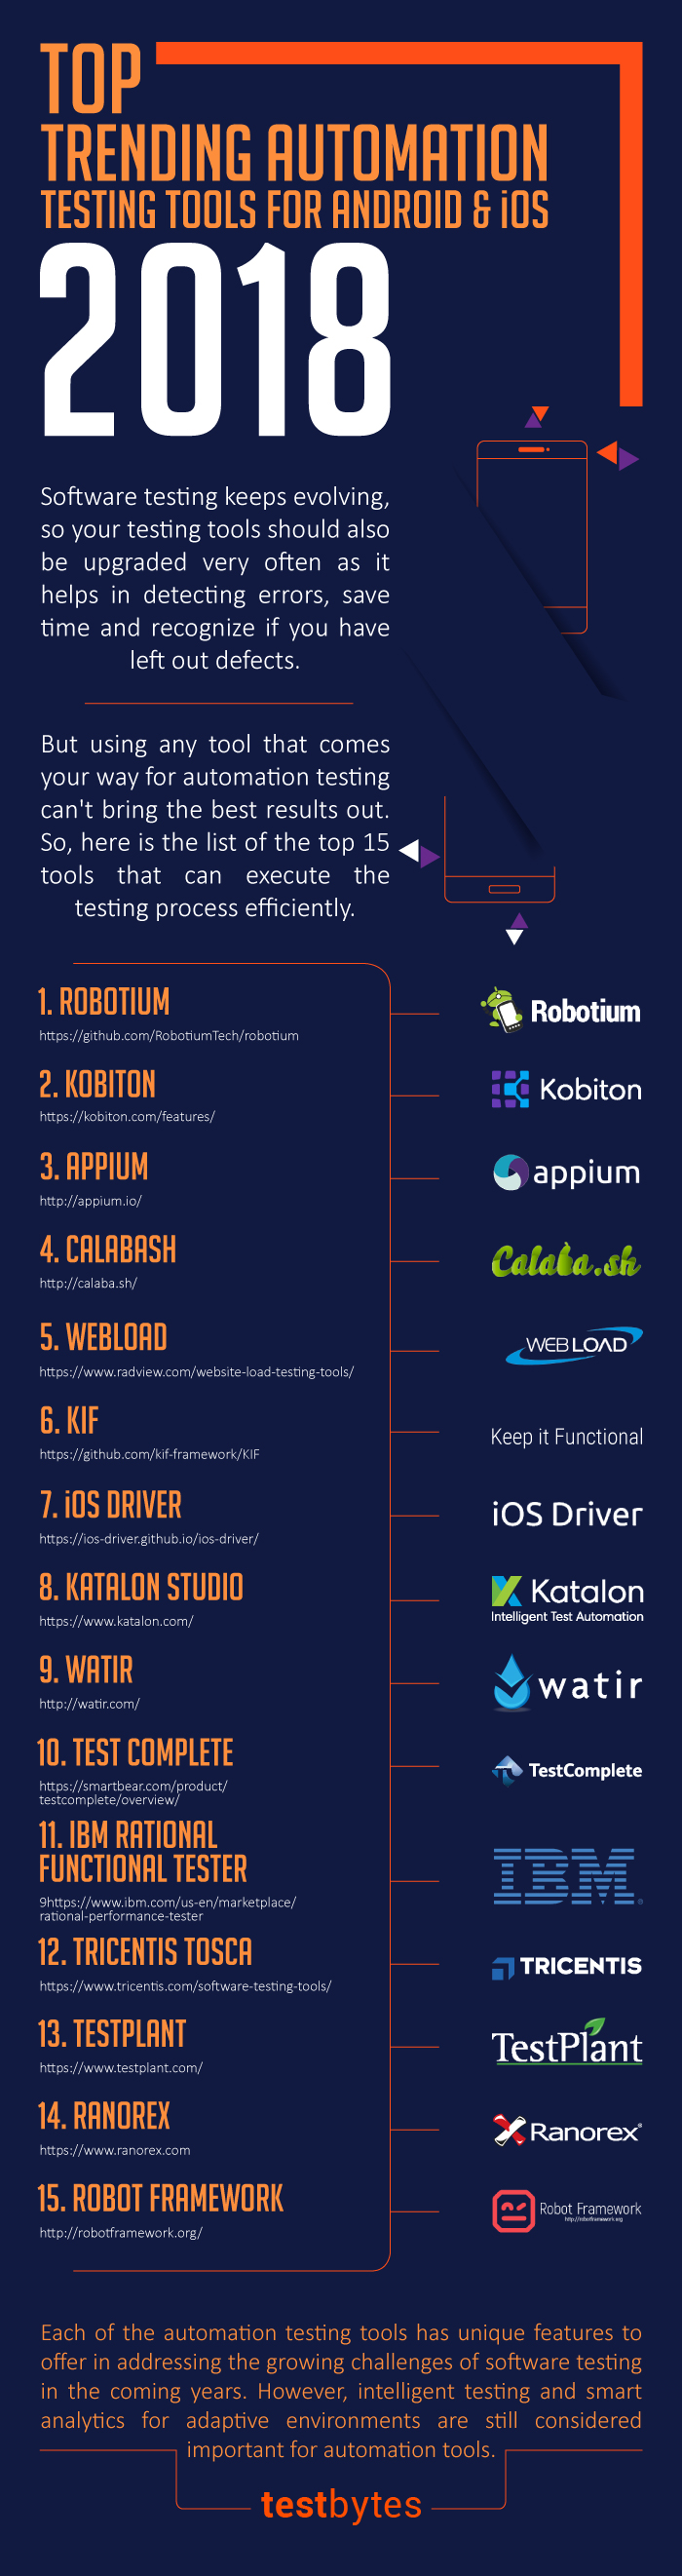 Top Automation Testing Tools for Android and iOS apps infographic